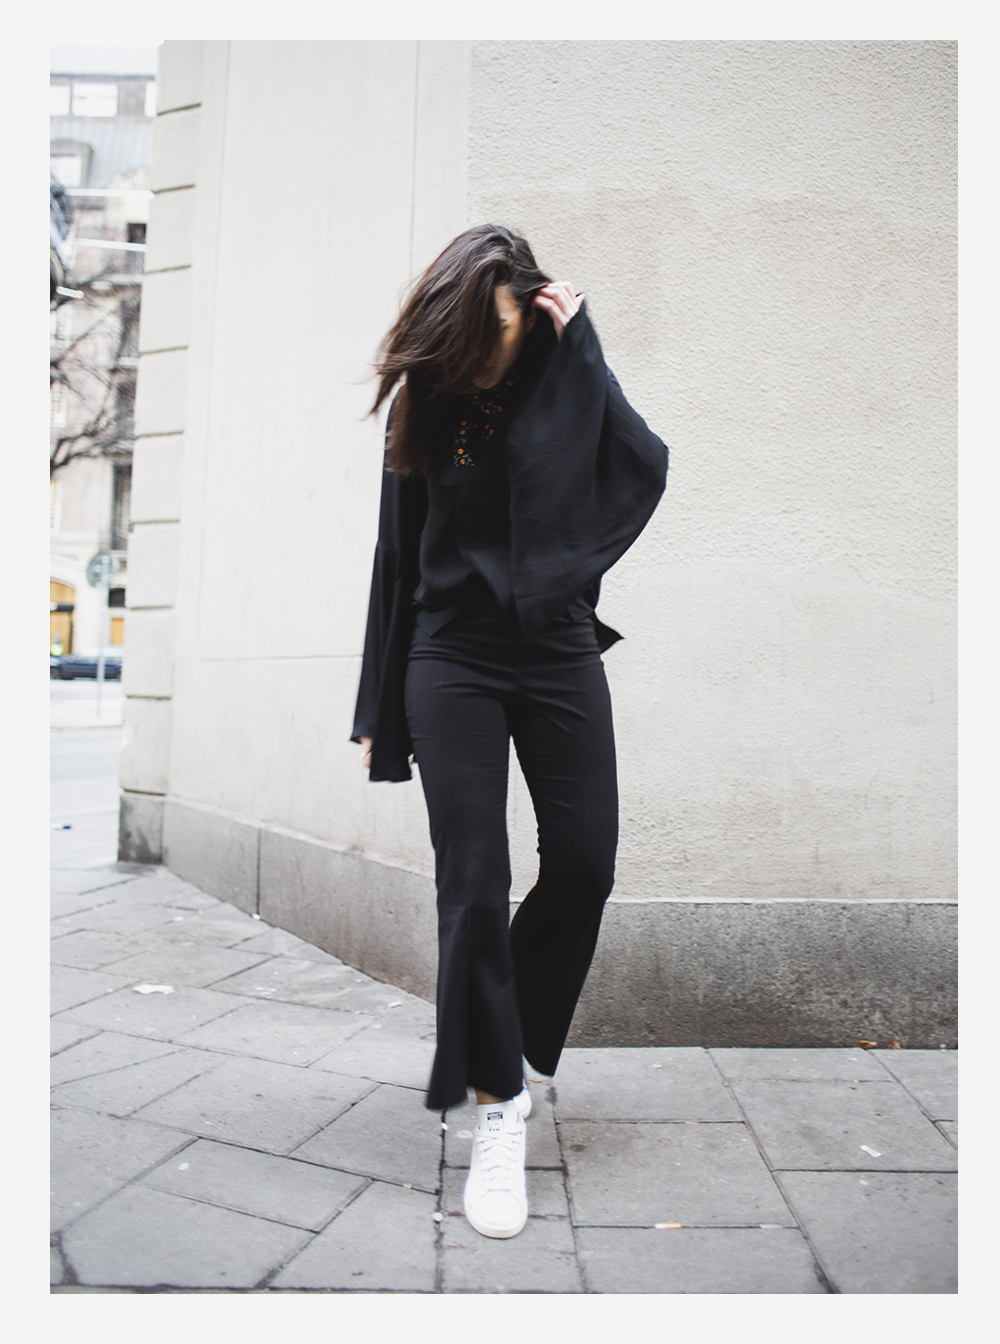 sania claus demina outfit weekday party flare pants trouser top adidas sneakers_2b